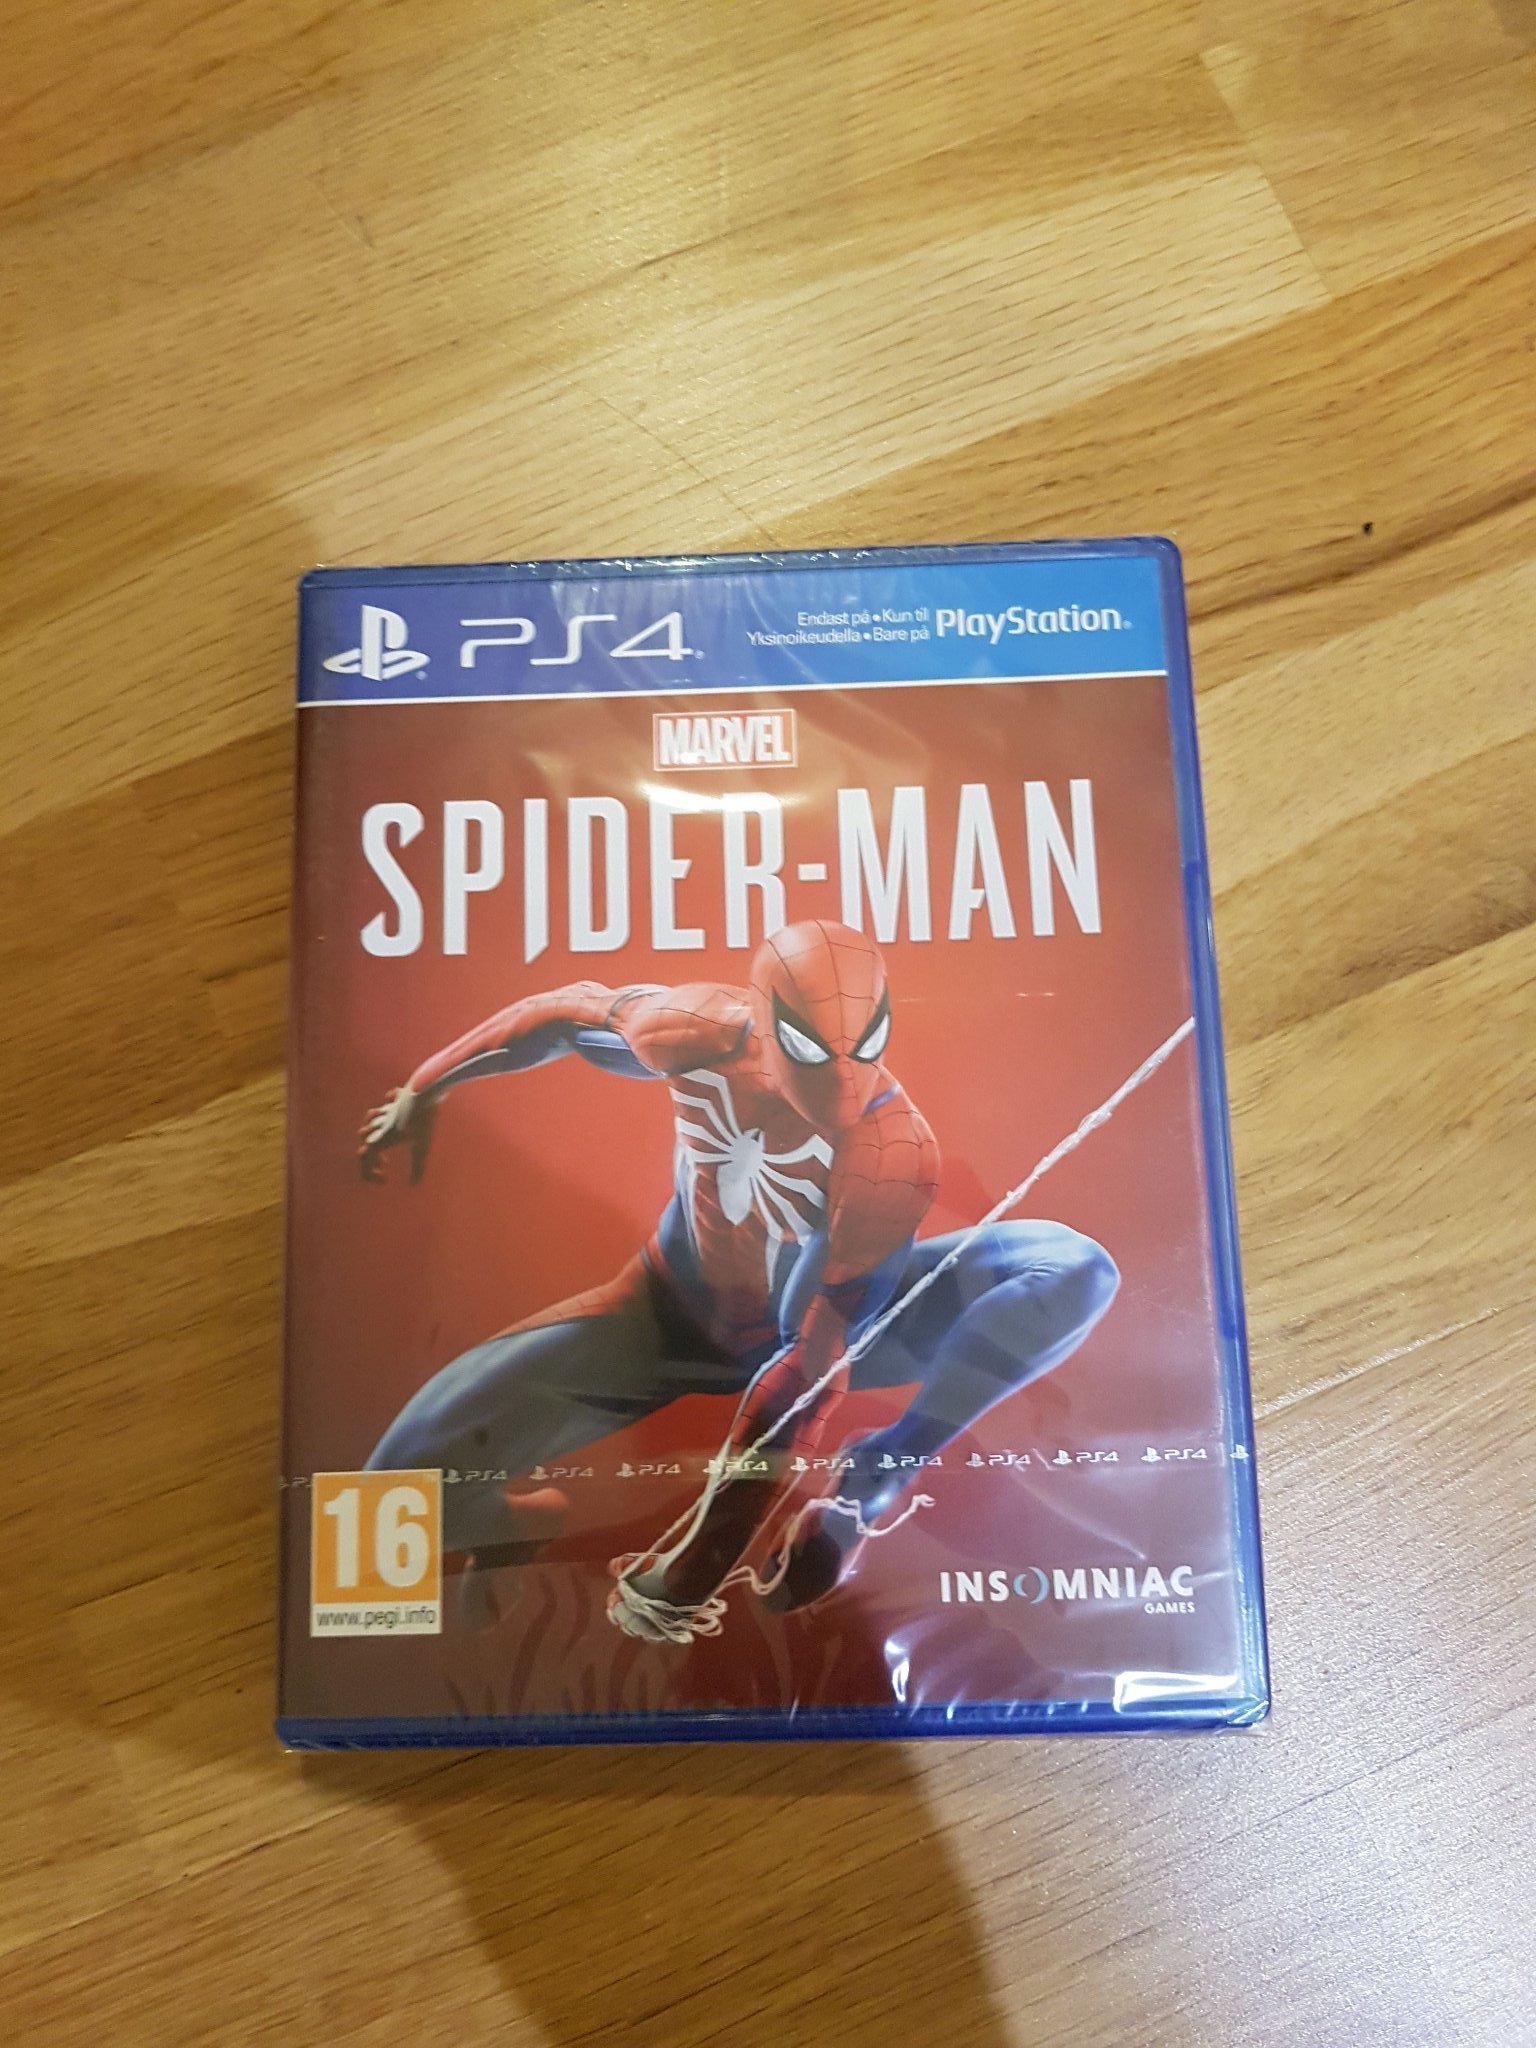 PS4: Spider-Man (Marvel, Spindelmannen). Nytt